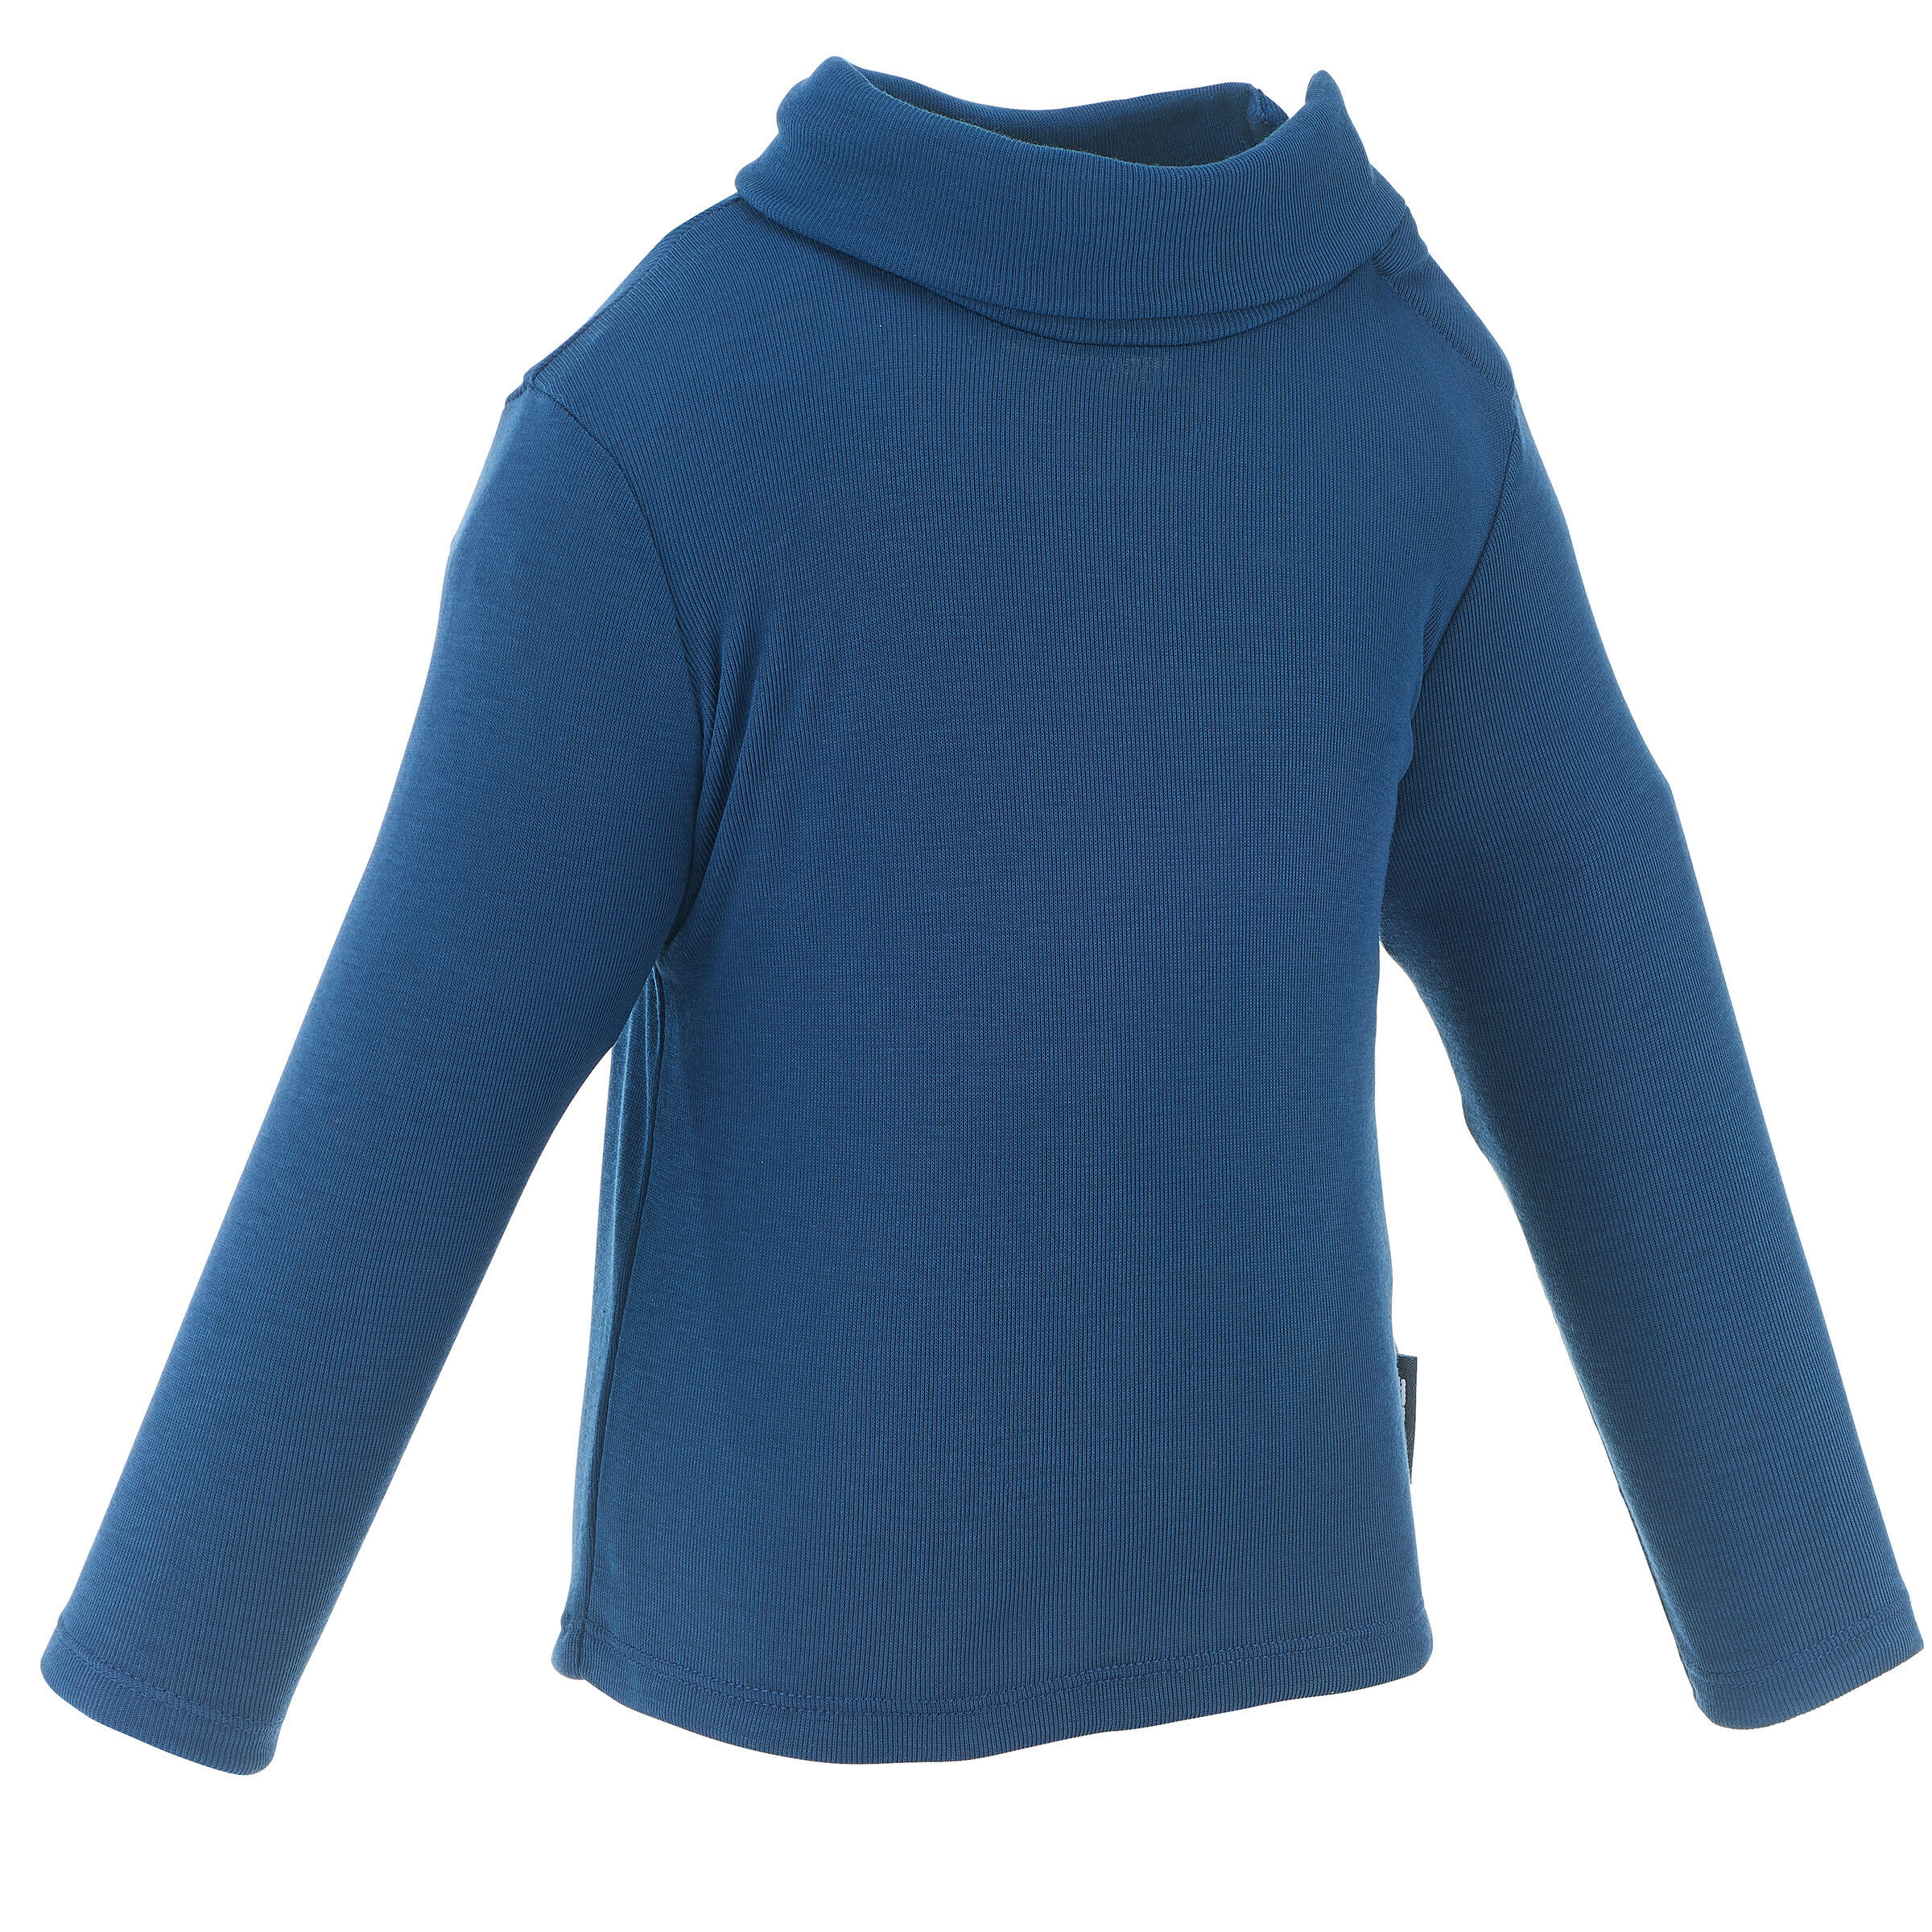 Simple Warm Baby's Sledding Base Layer Top - Navy